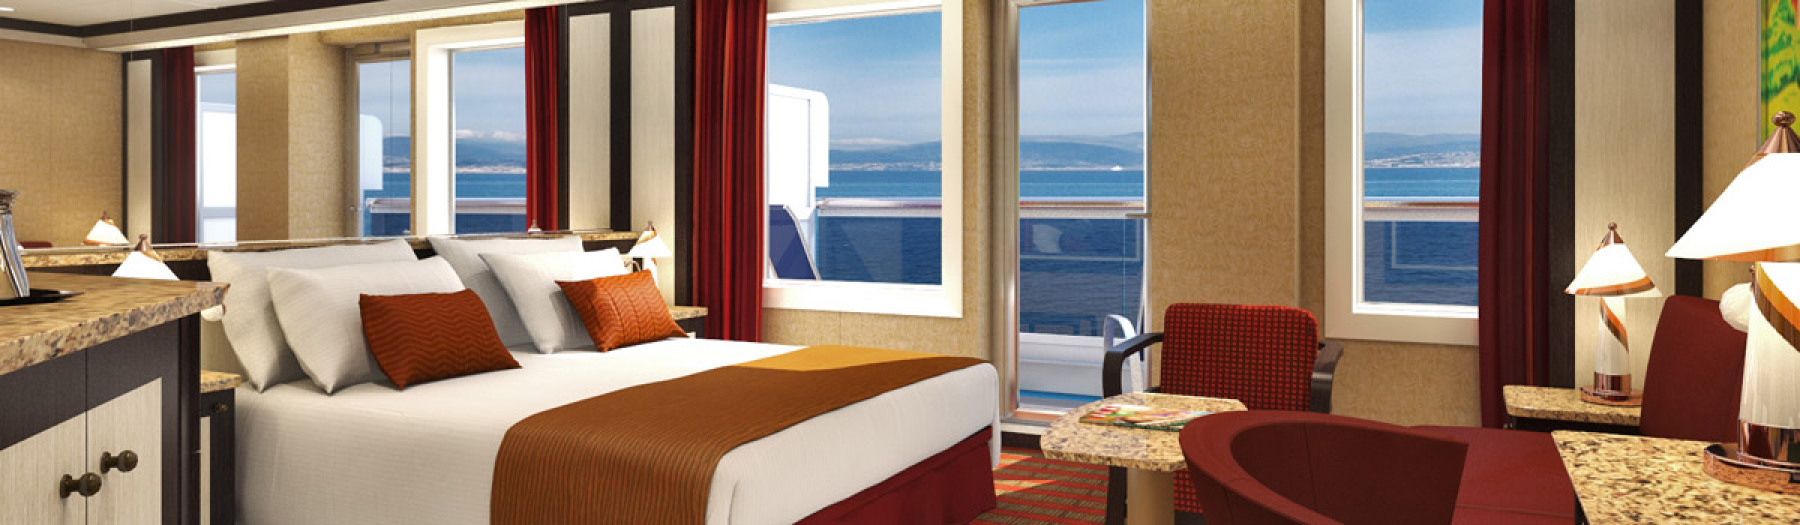 Carnival Cruise Lines Carnival Dream AccommodationCloud 9 Spa Suite.jpg